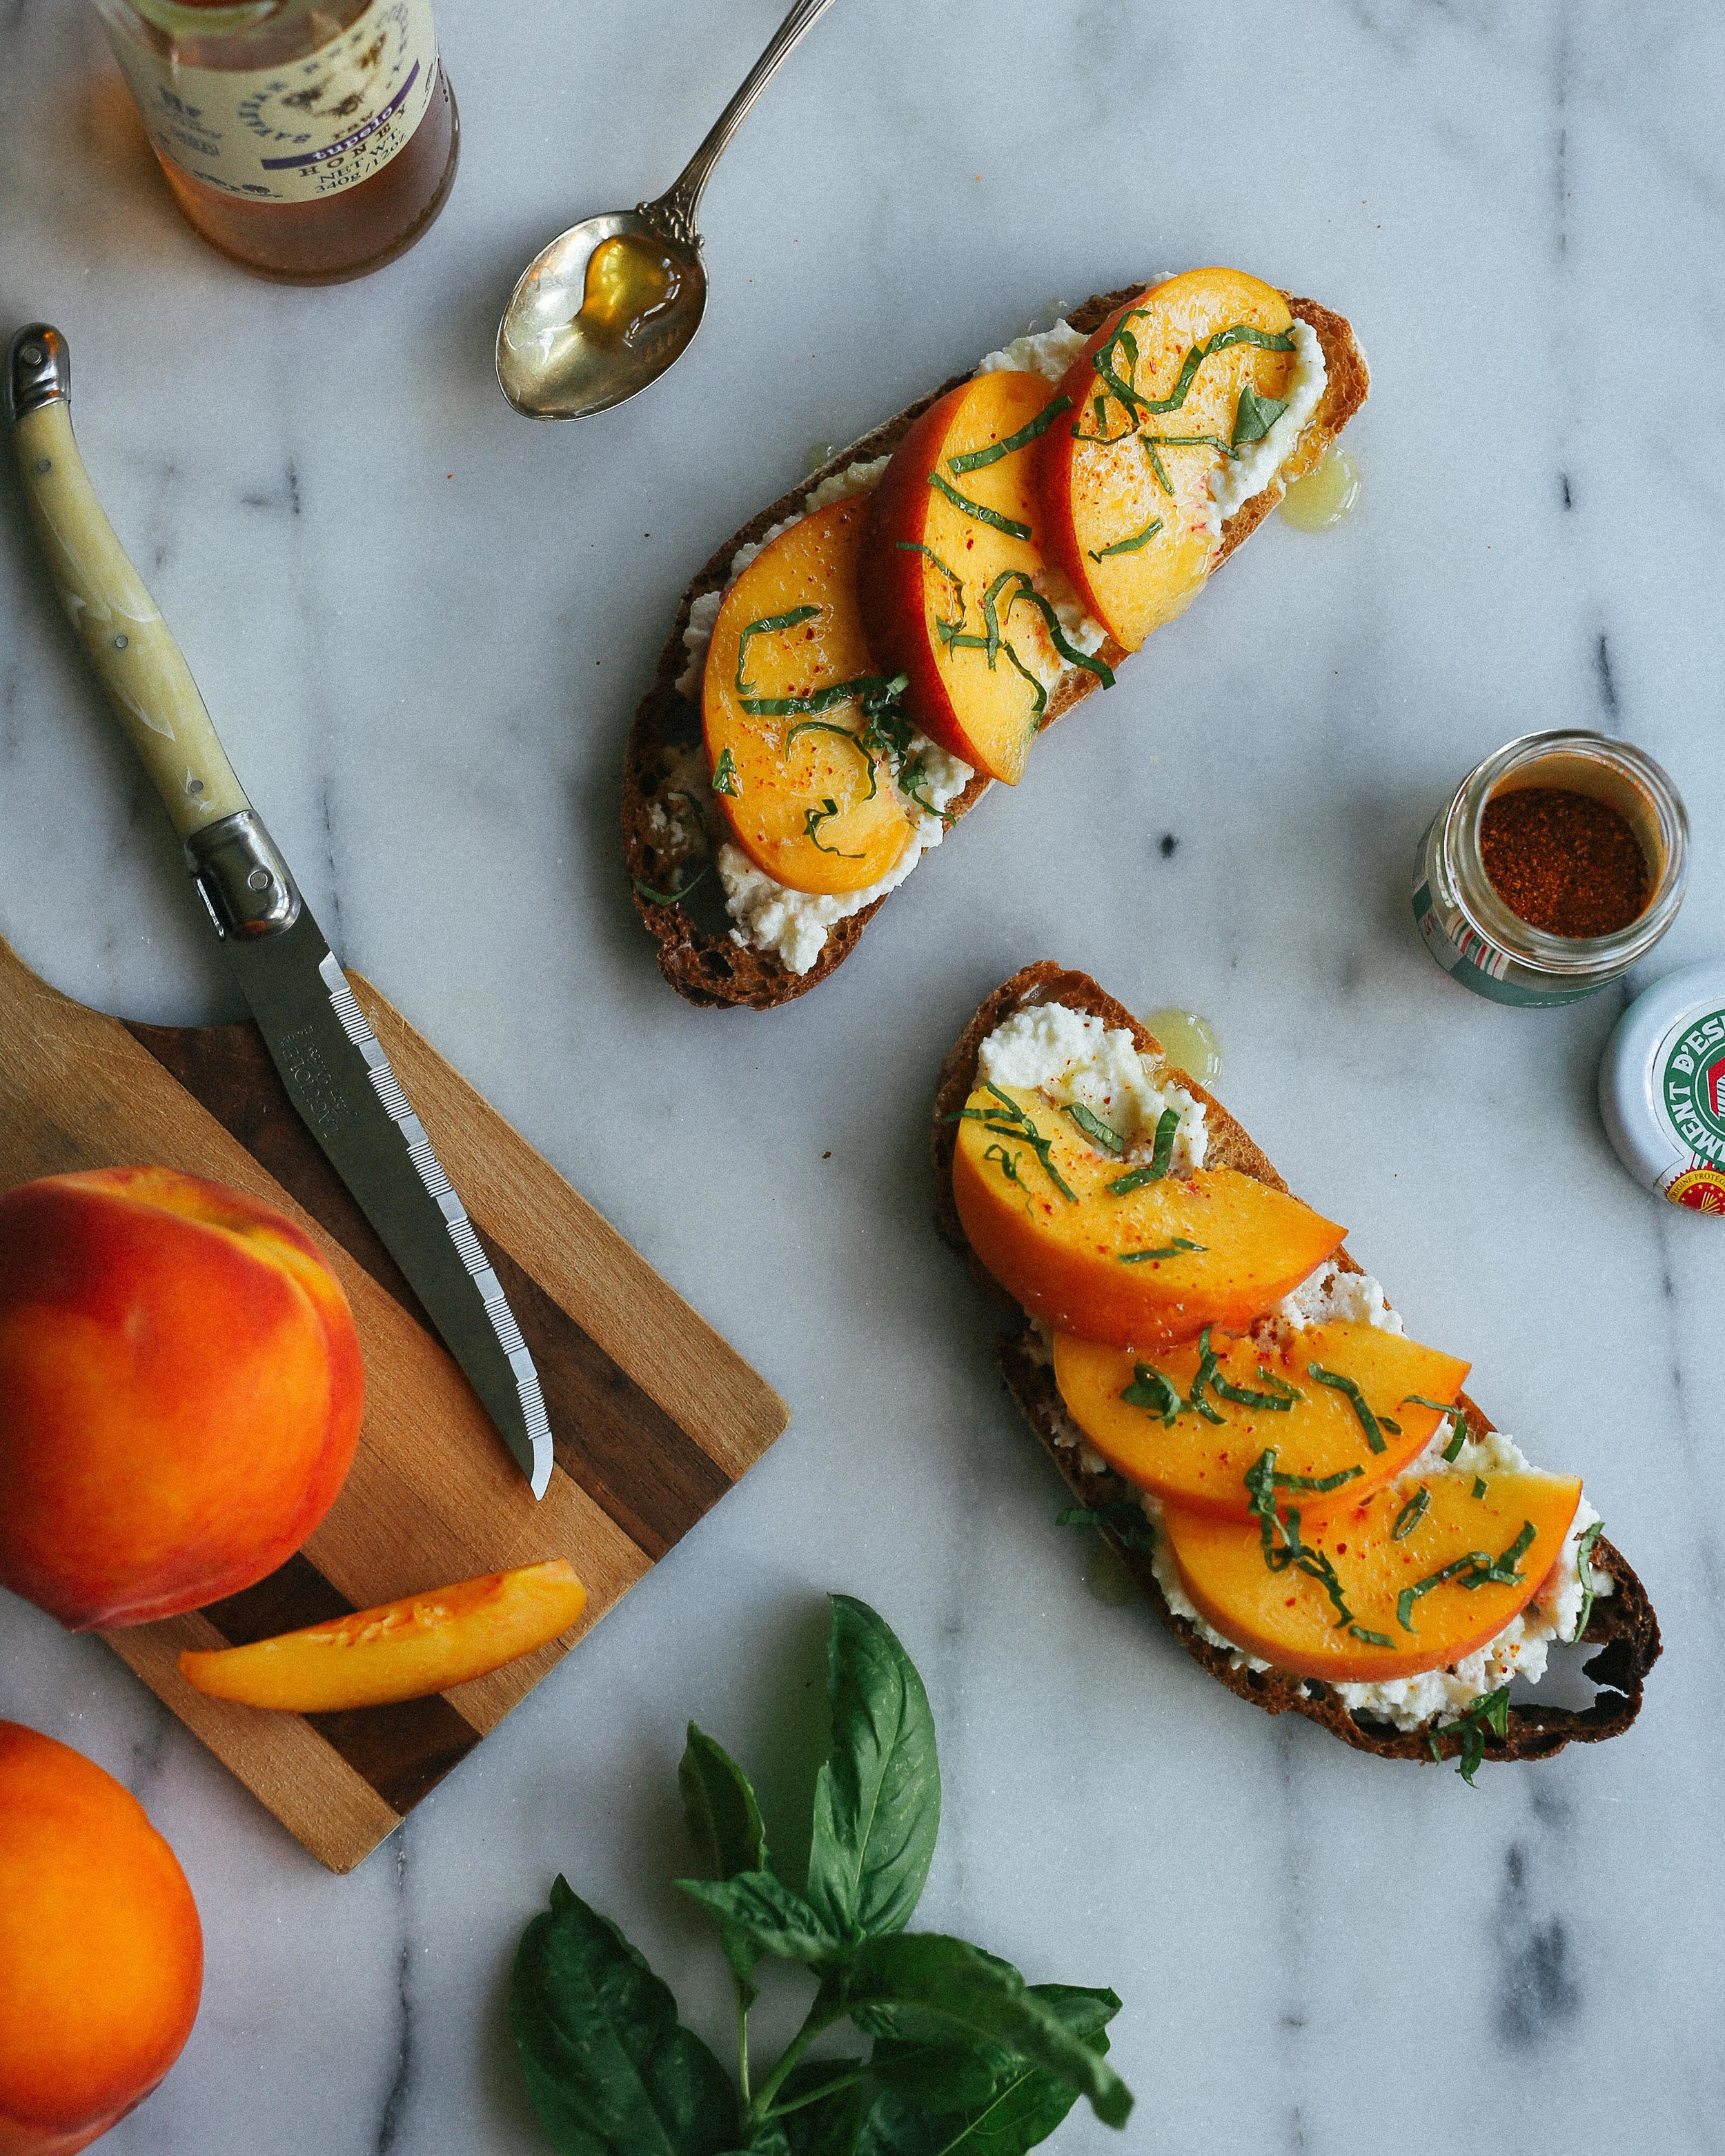 ricotta tartine with peaches, basil, and piment d'espelette